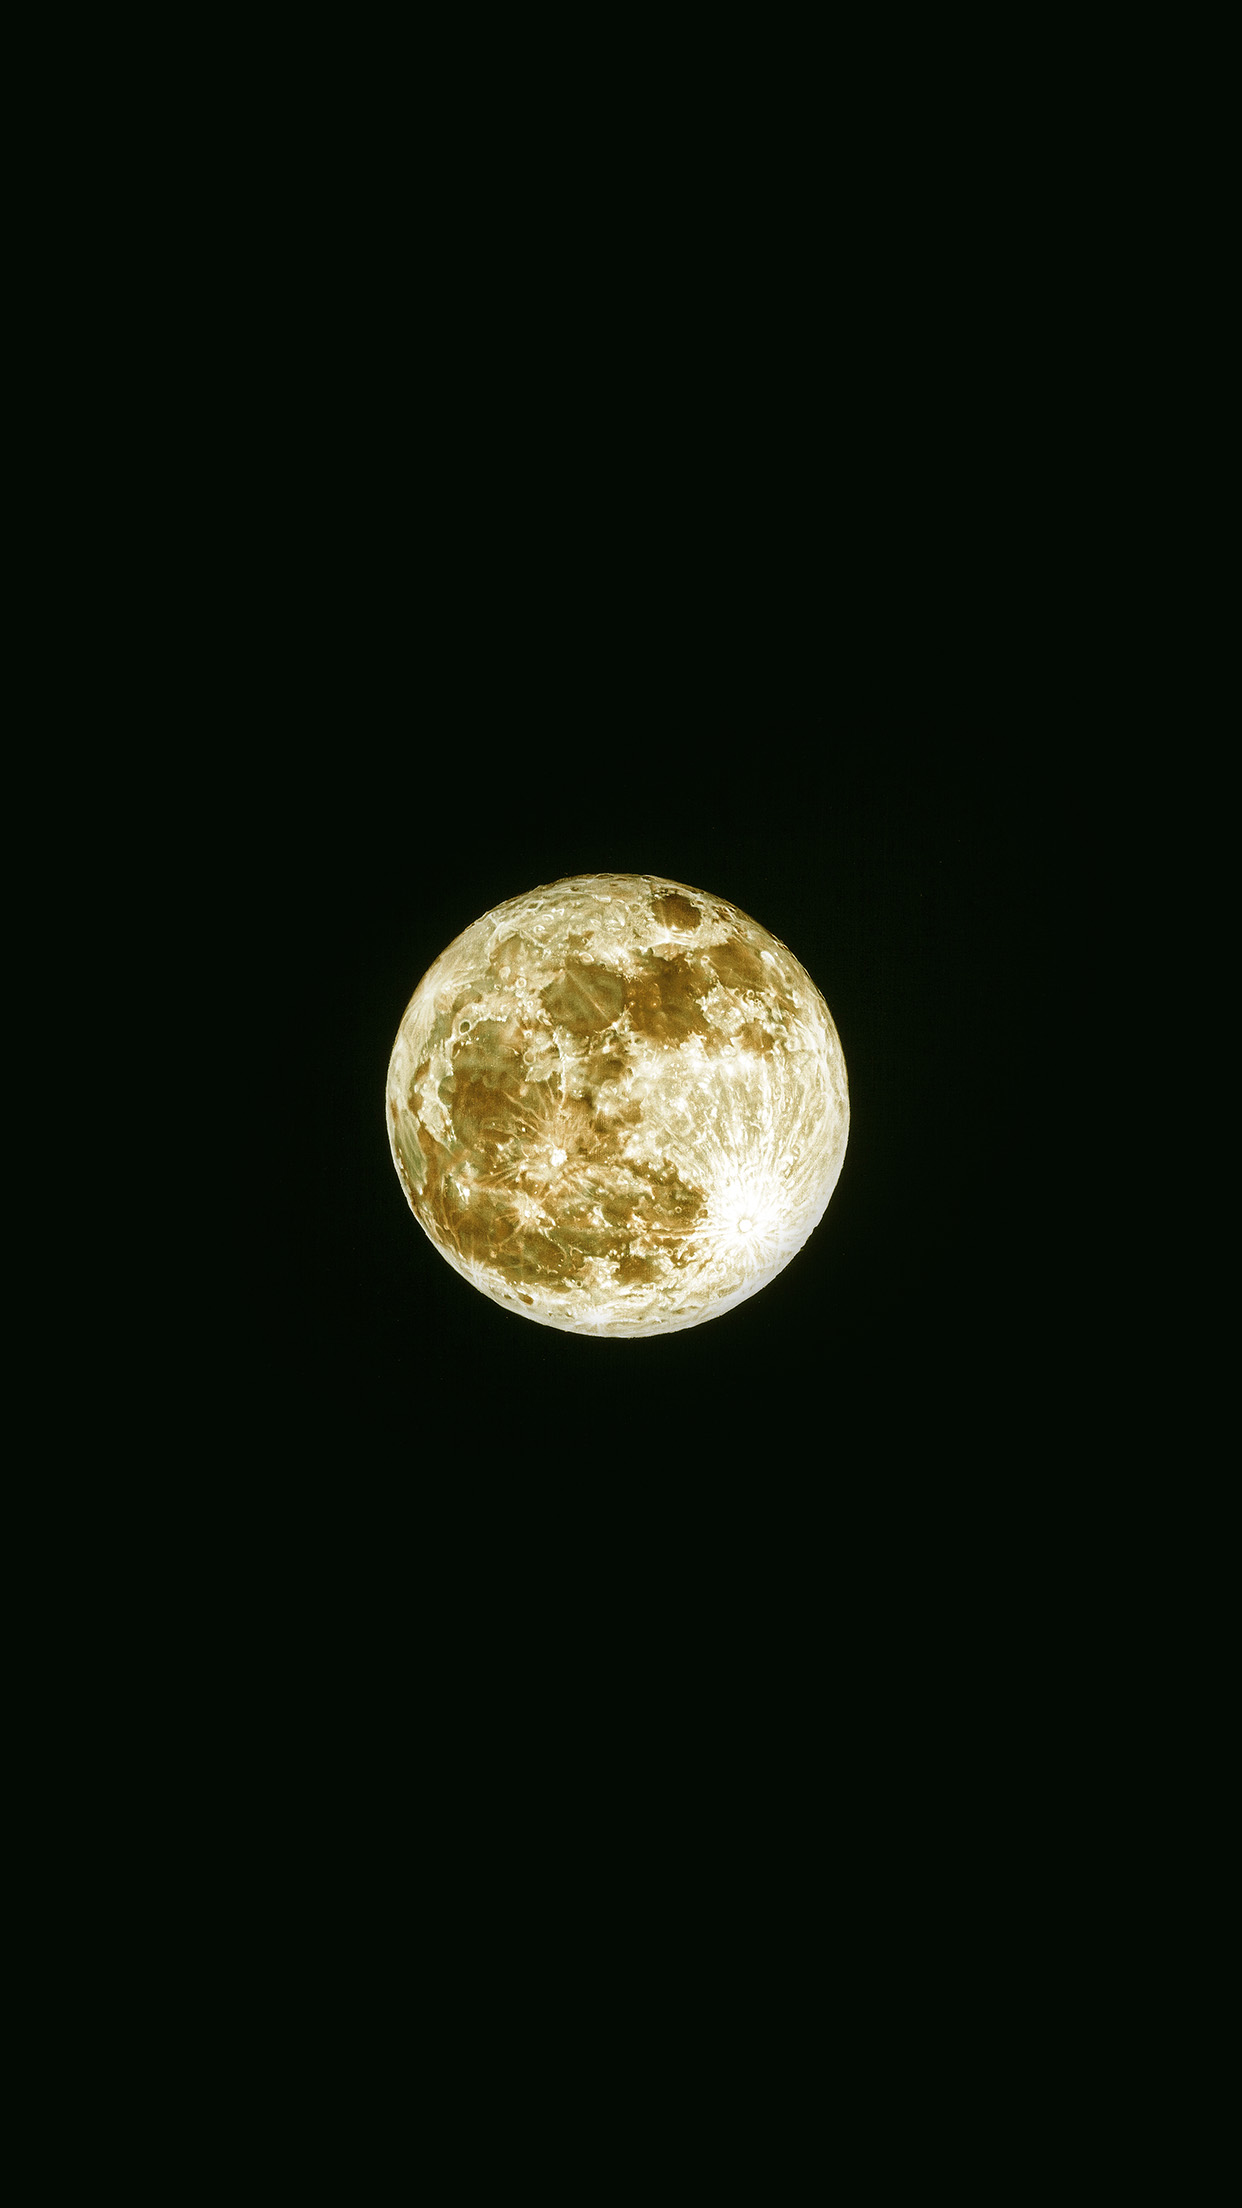 Iphone7papers Com Iphone7 Wallpaper Am97 Damian Moon